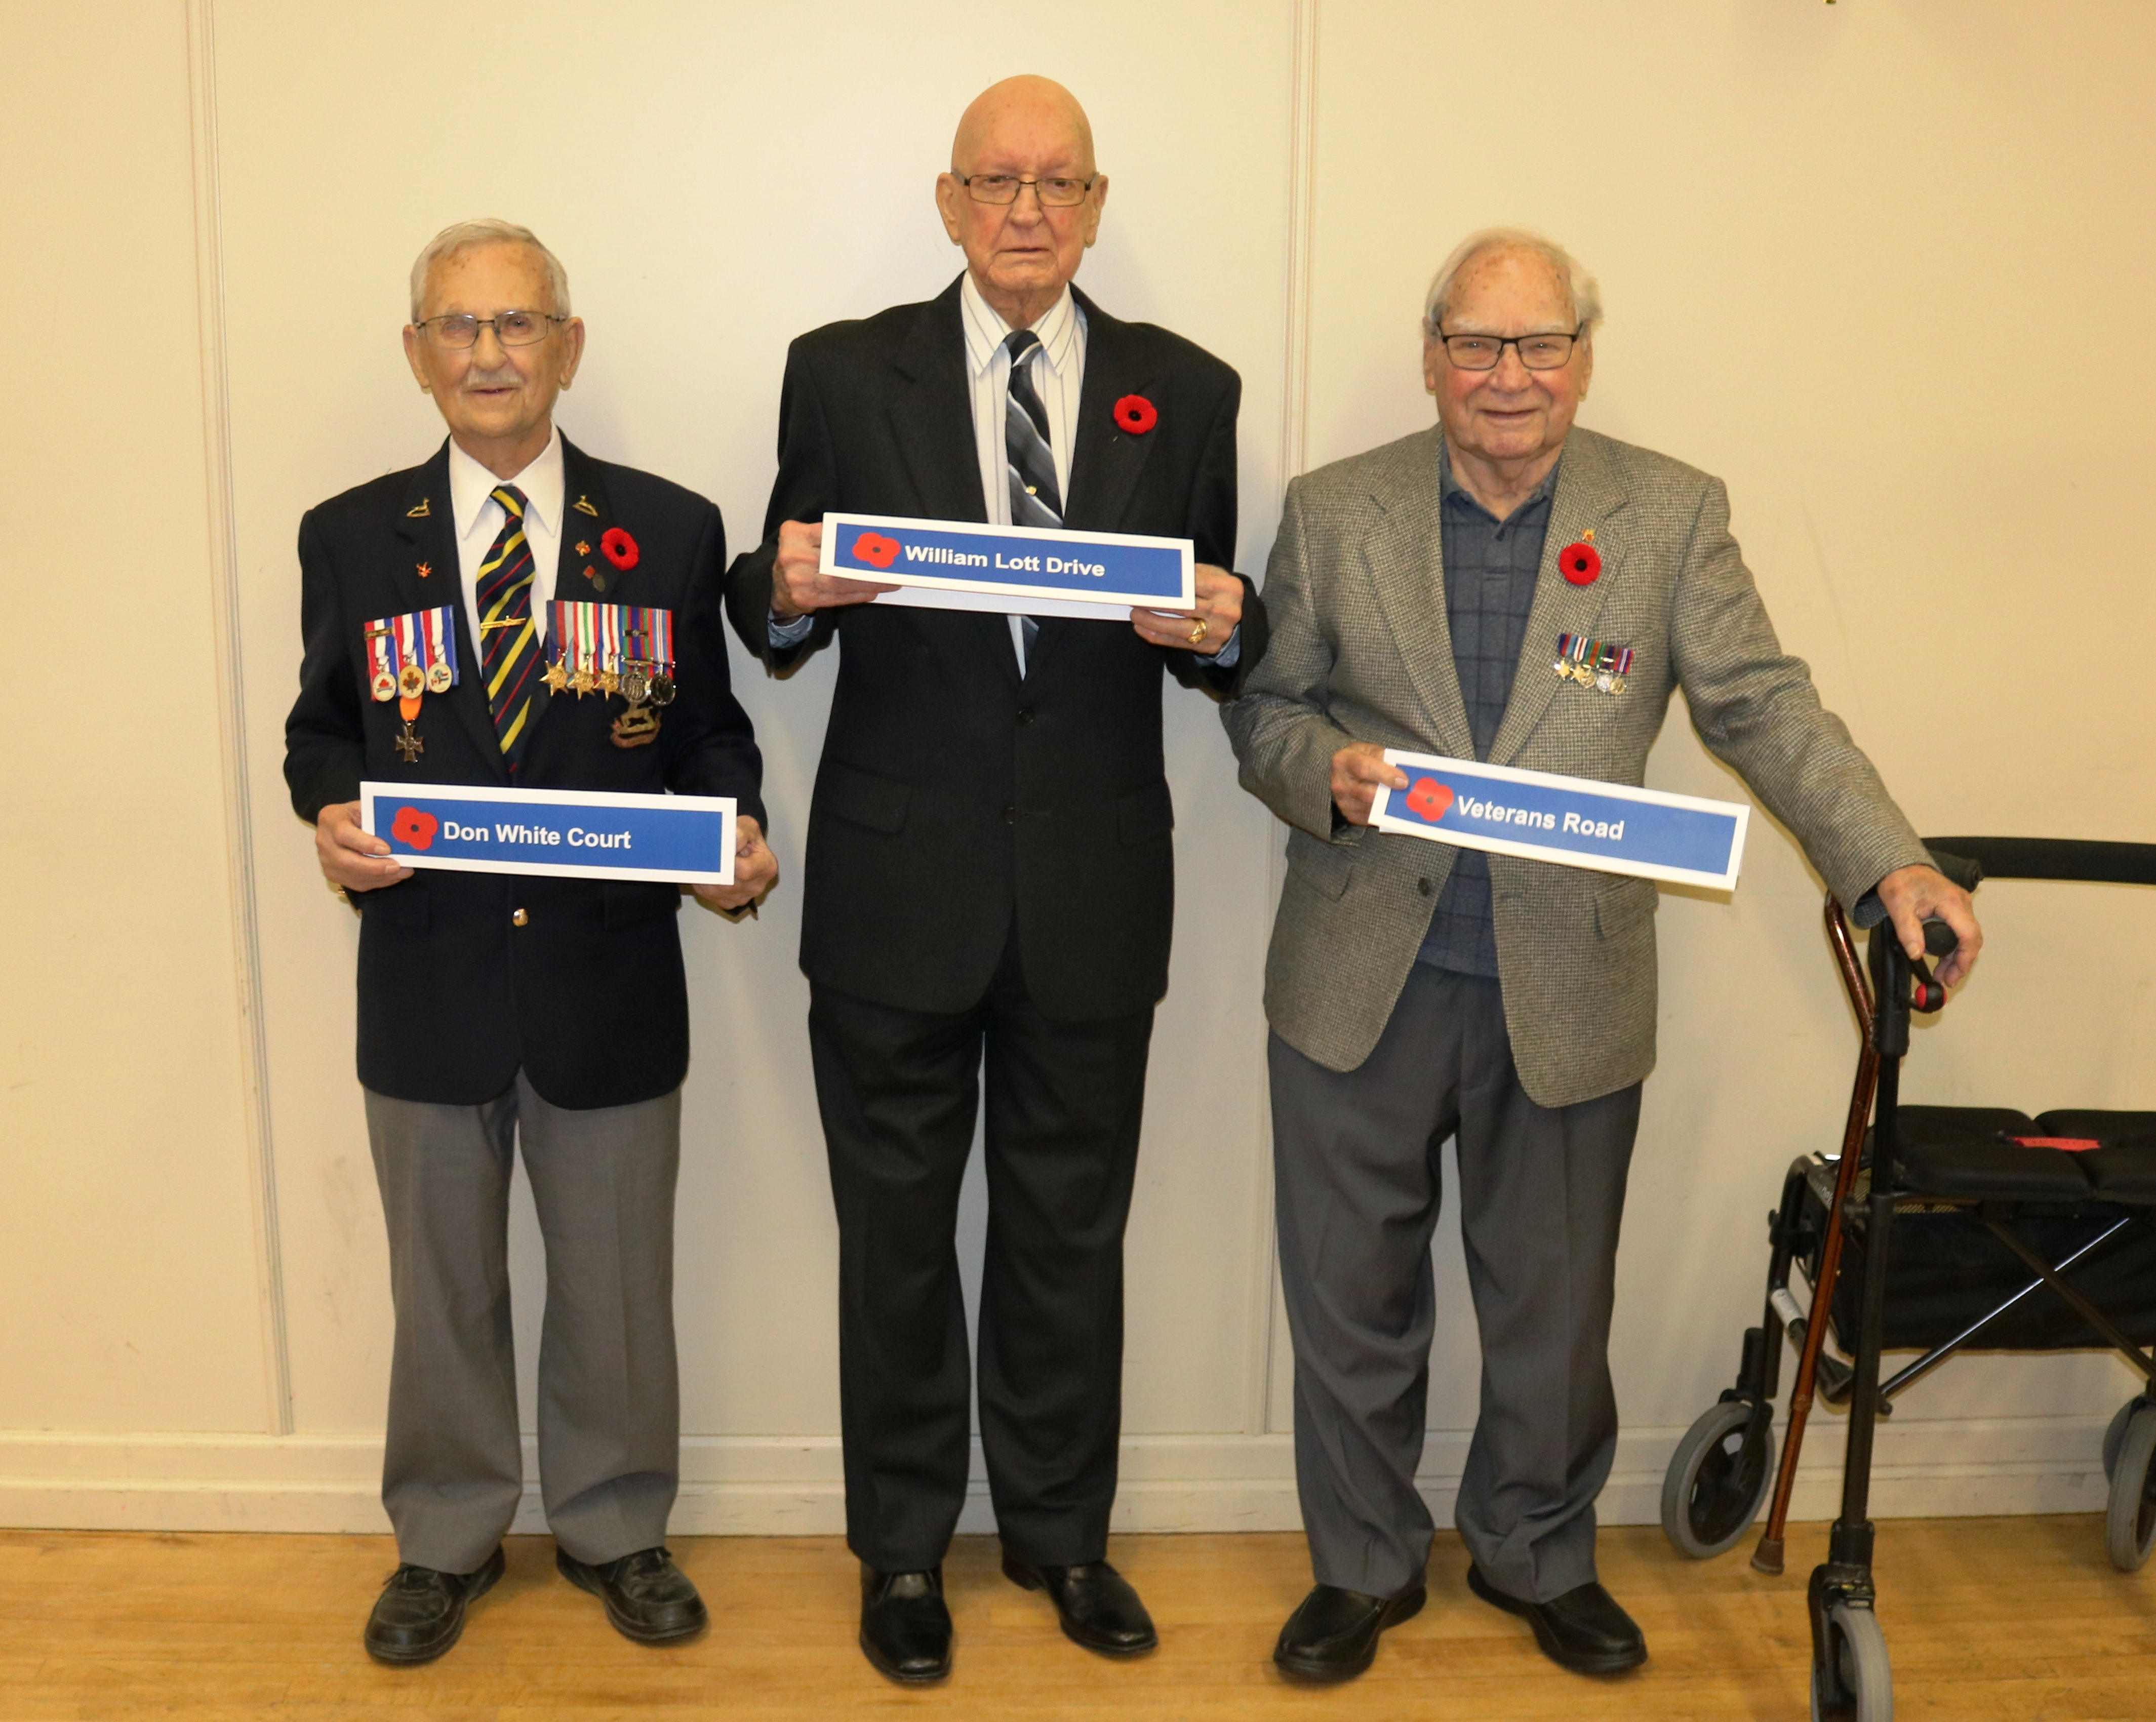 Veterans in attendance at the event